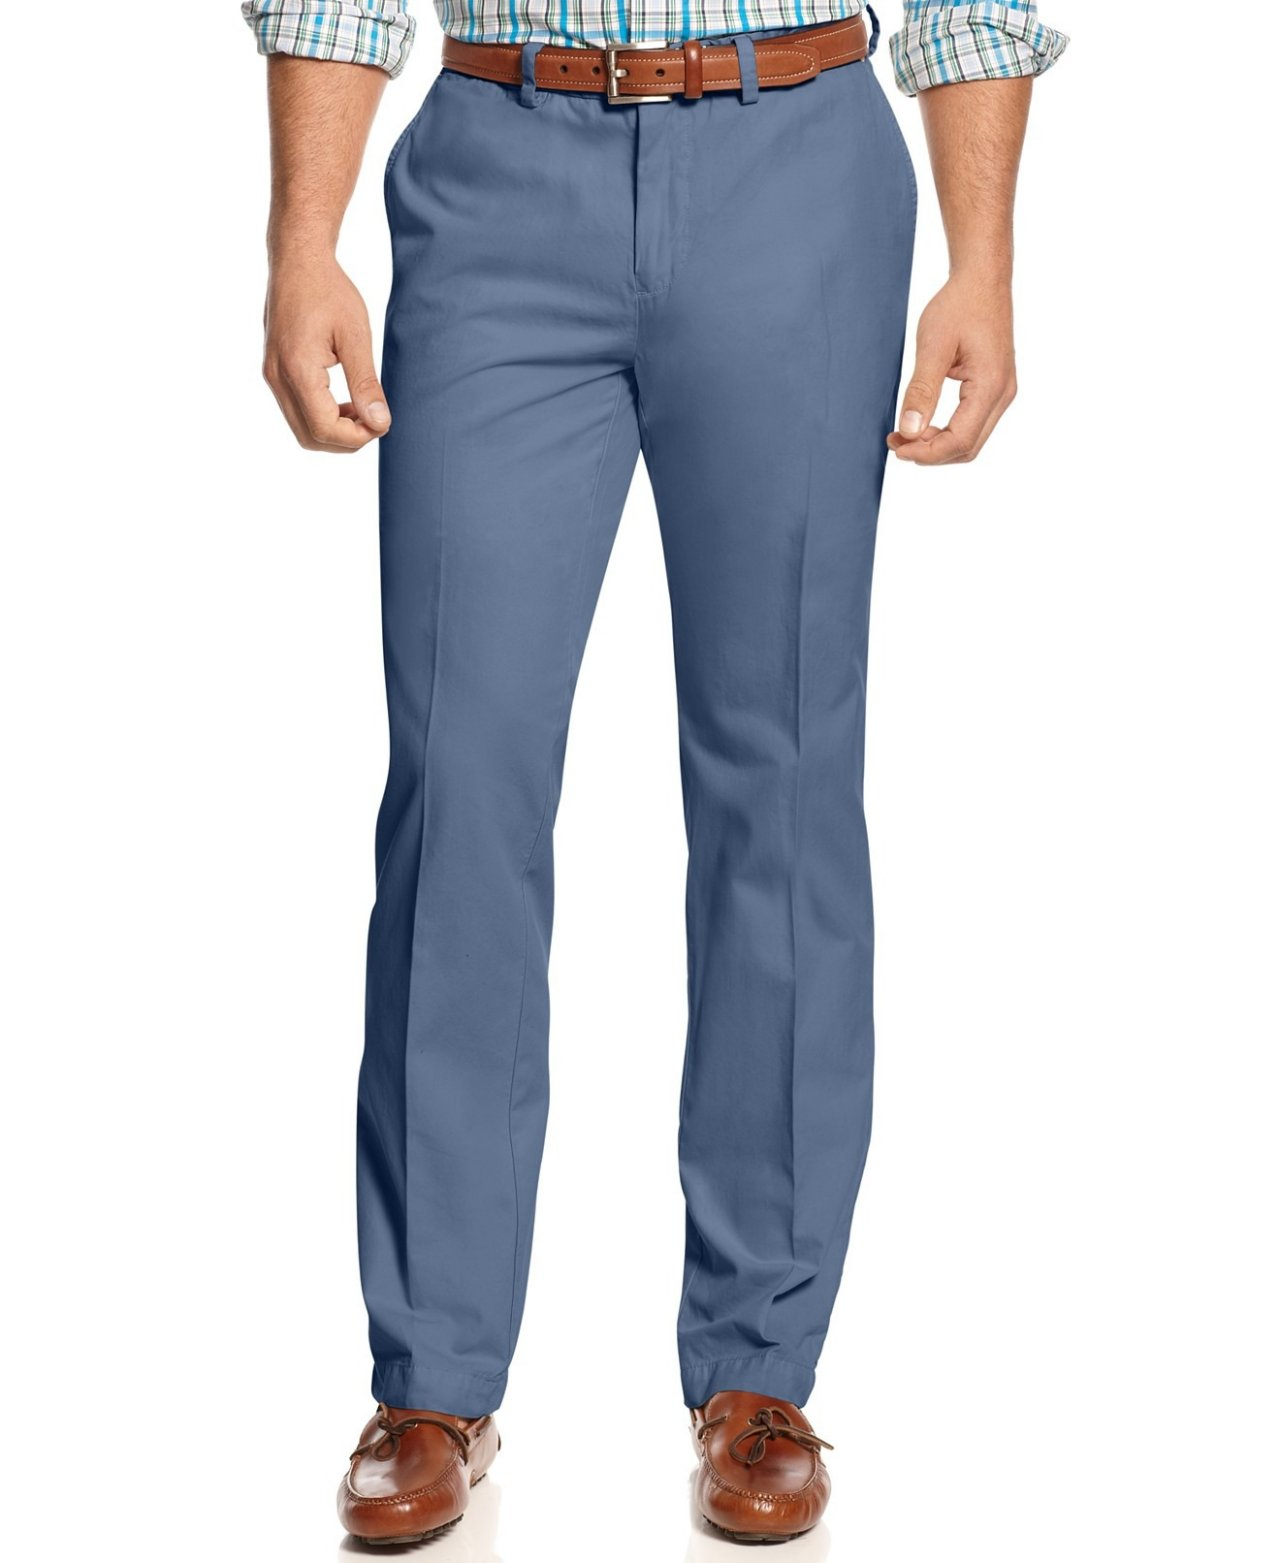 Tommy Bahama New Blue Mens Big And Tall 44 Khakis Chinos